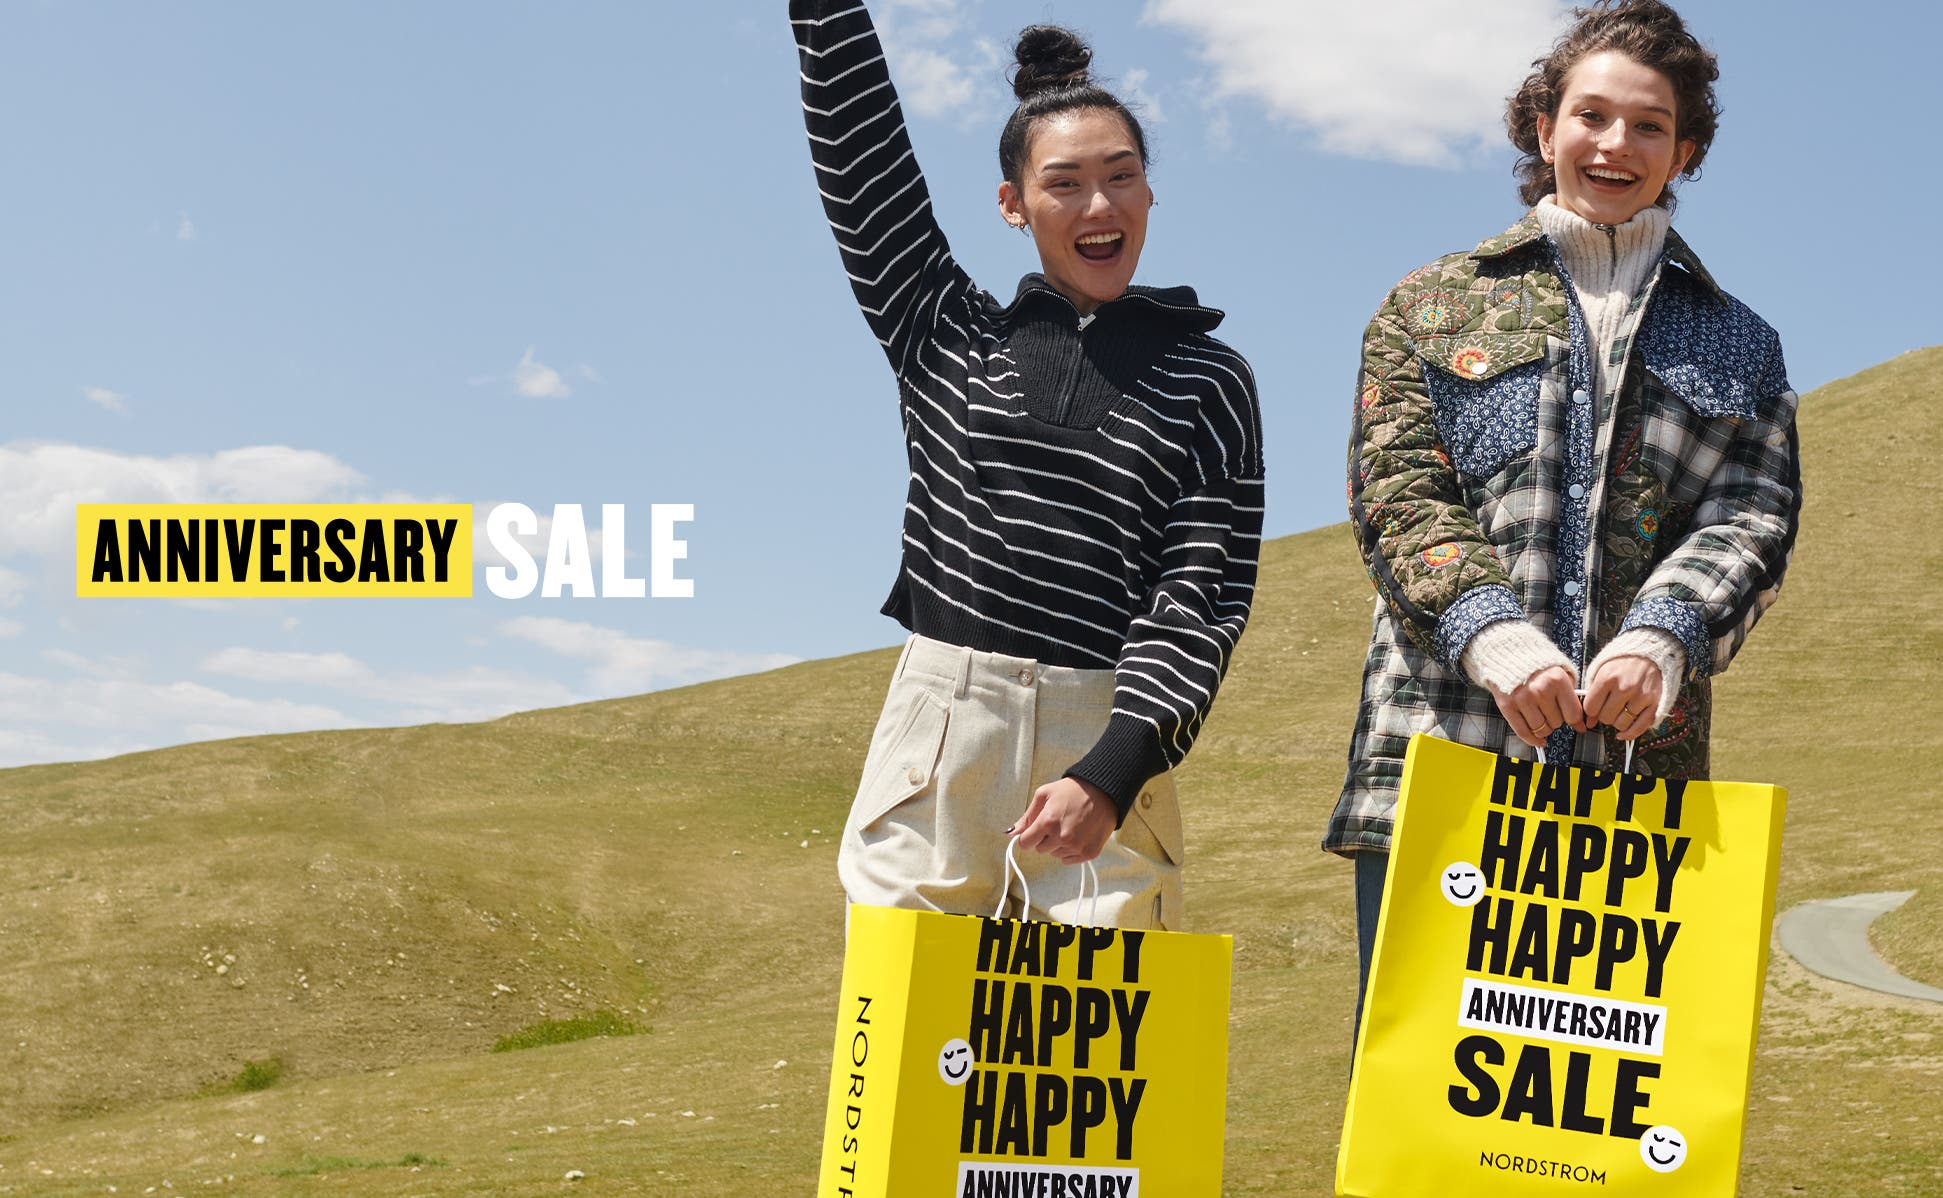 Two people jumping in a field with Anniversary Sale shopping bags.